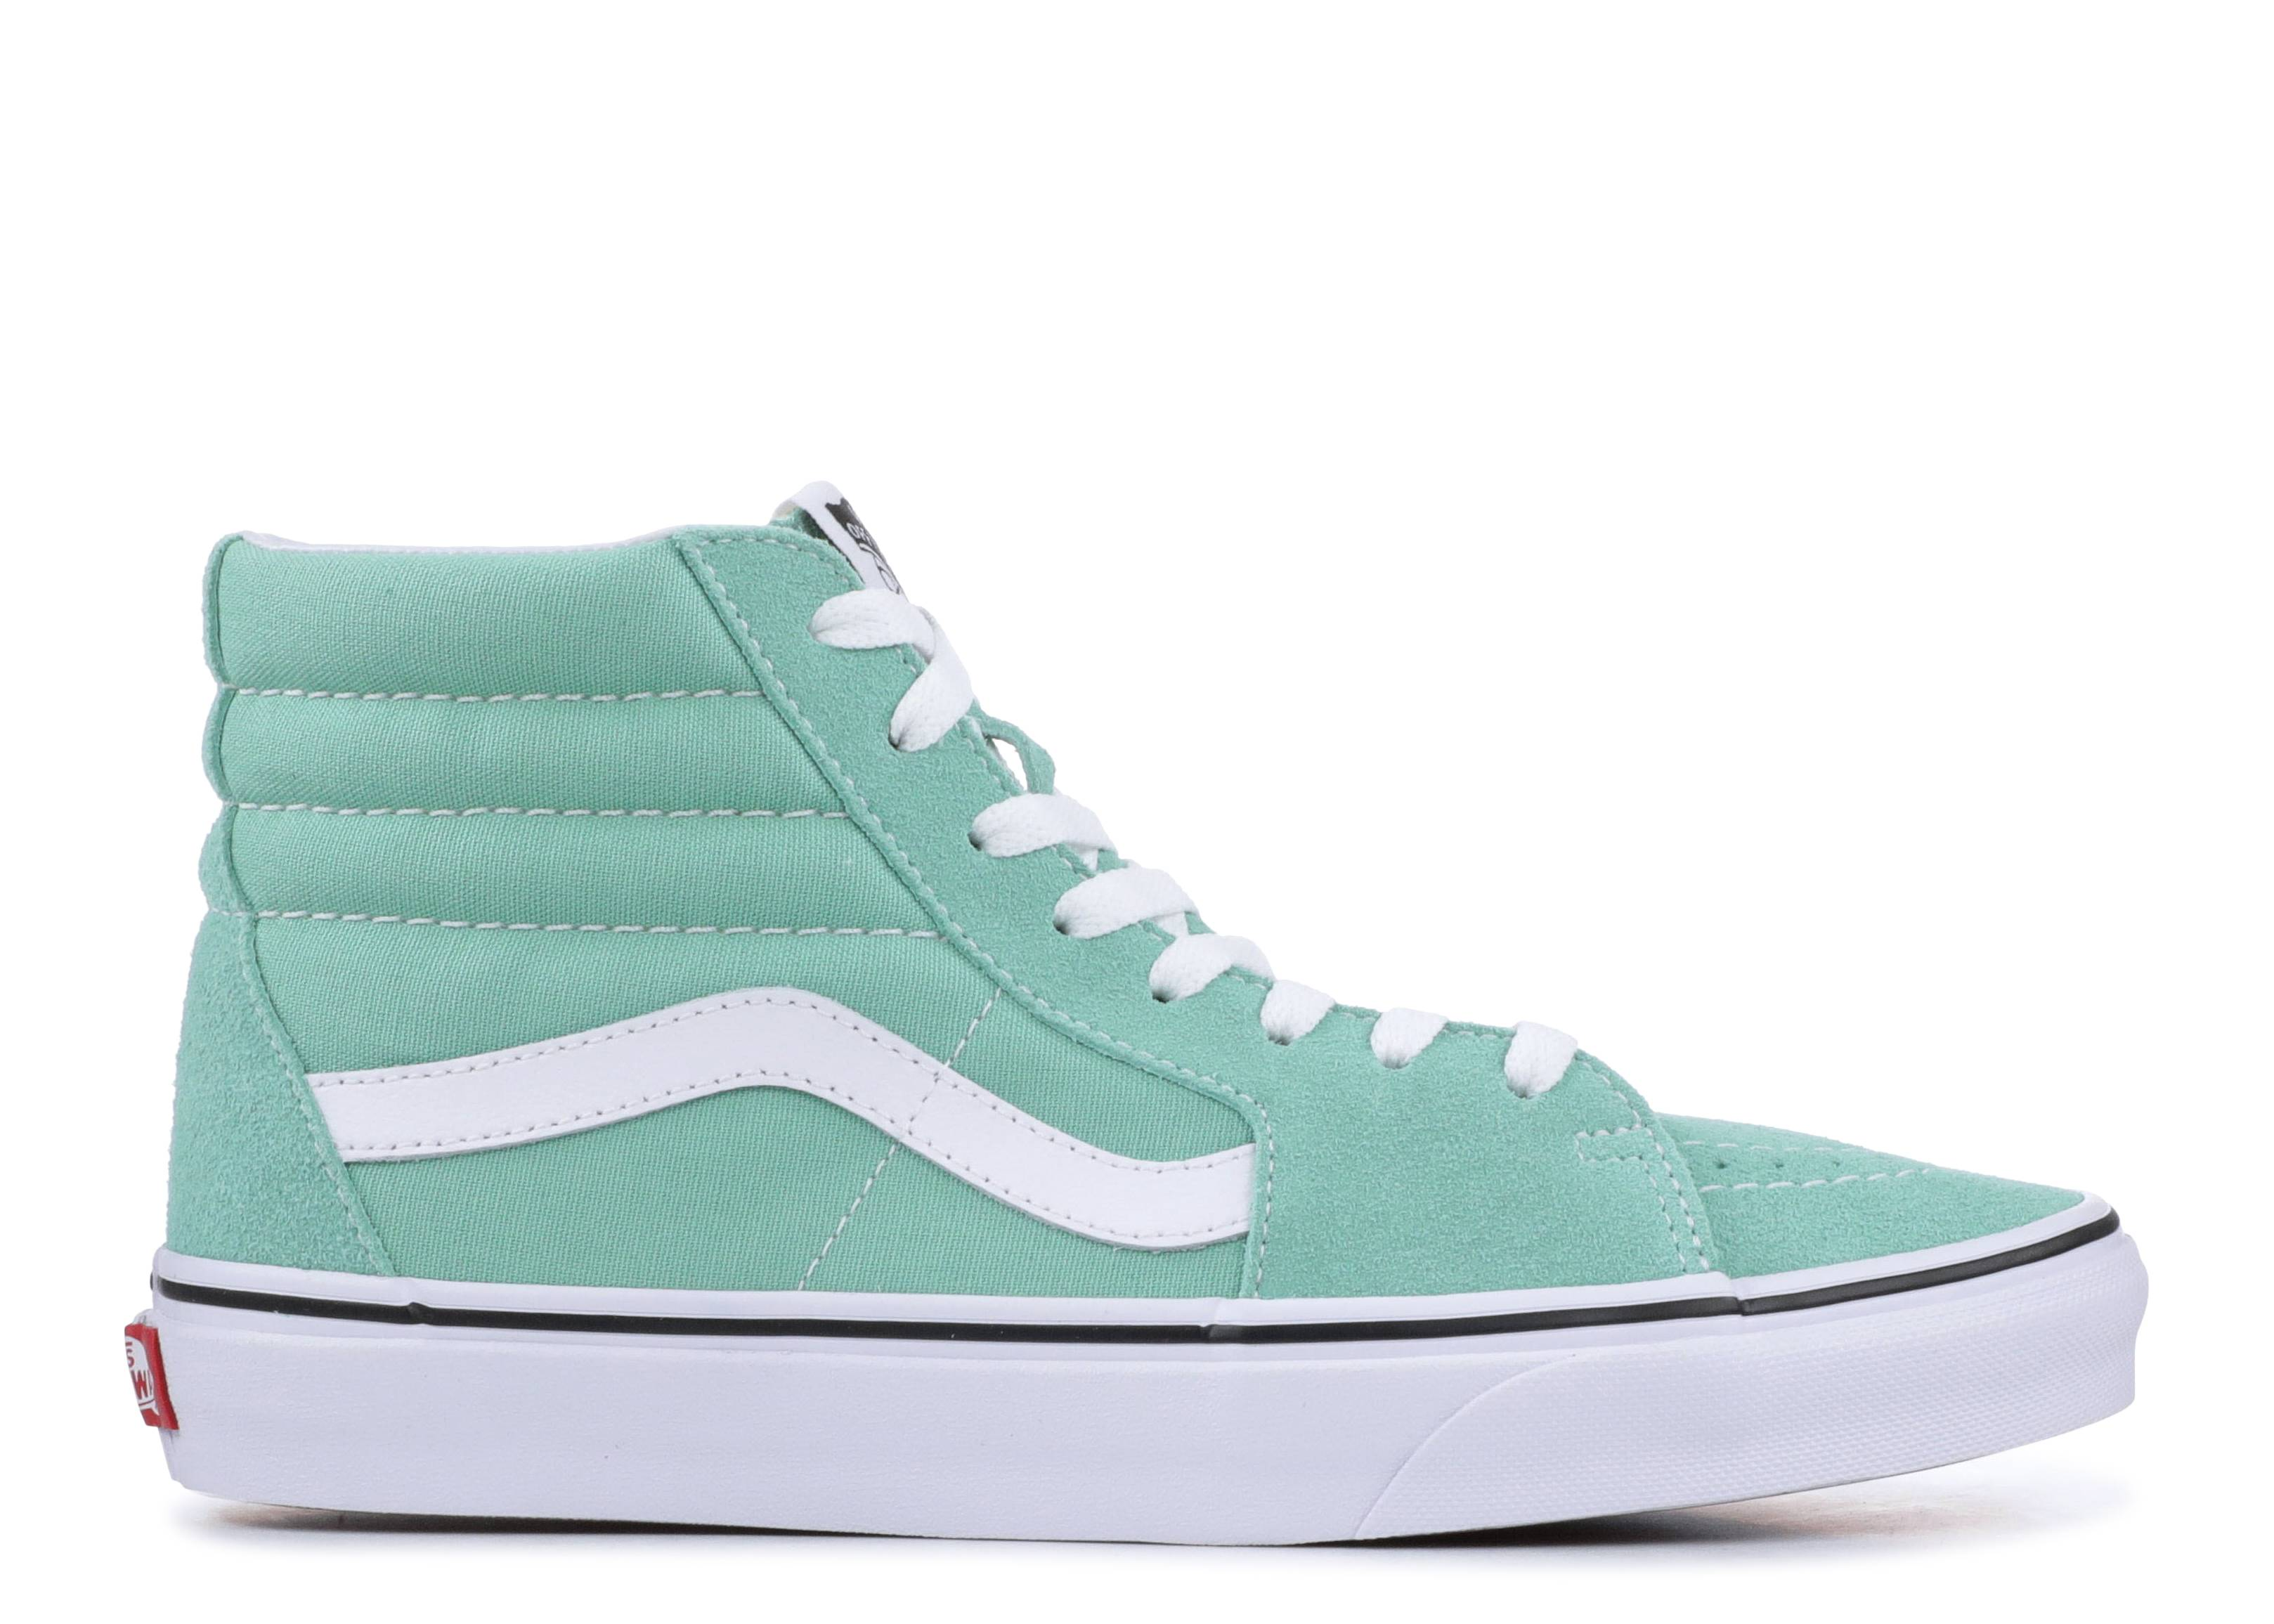 vans sk8-hi (DO NOT USE)